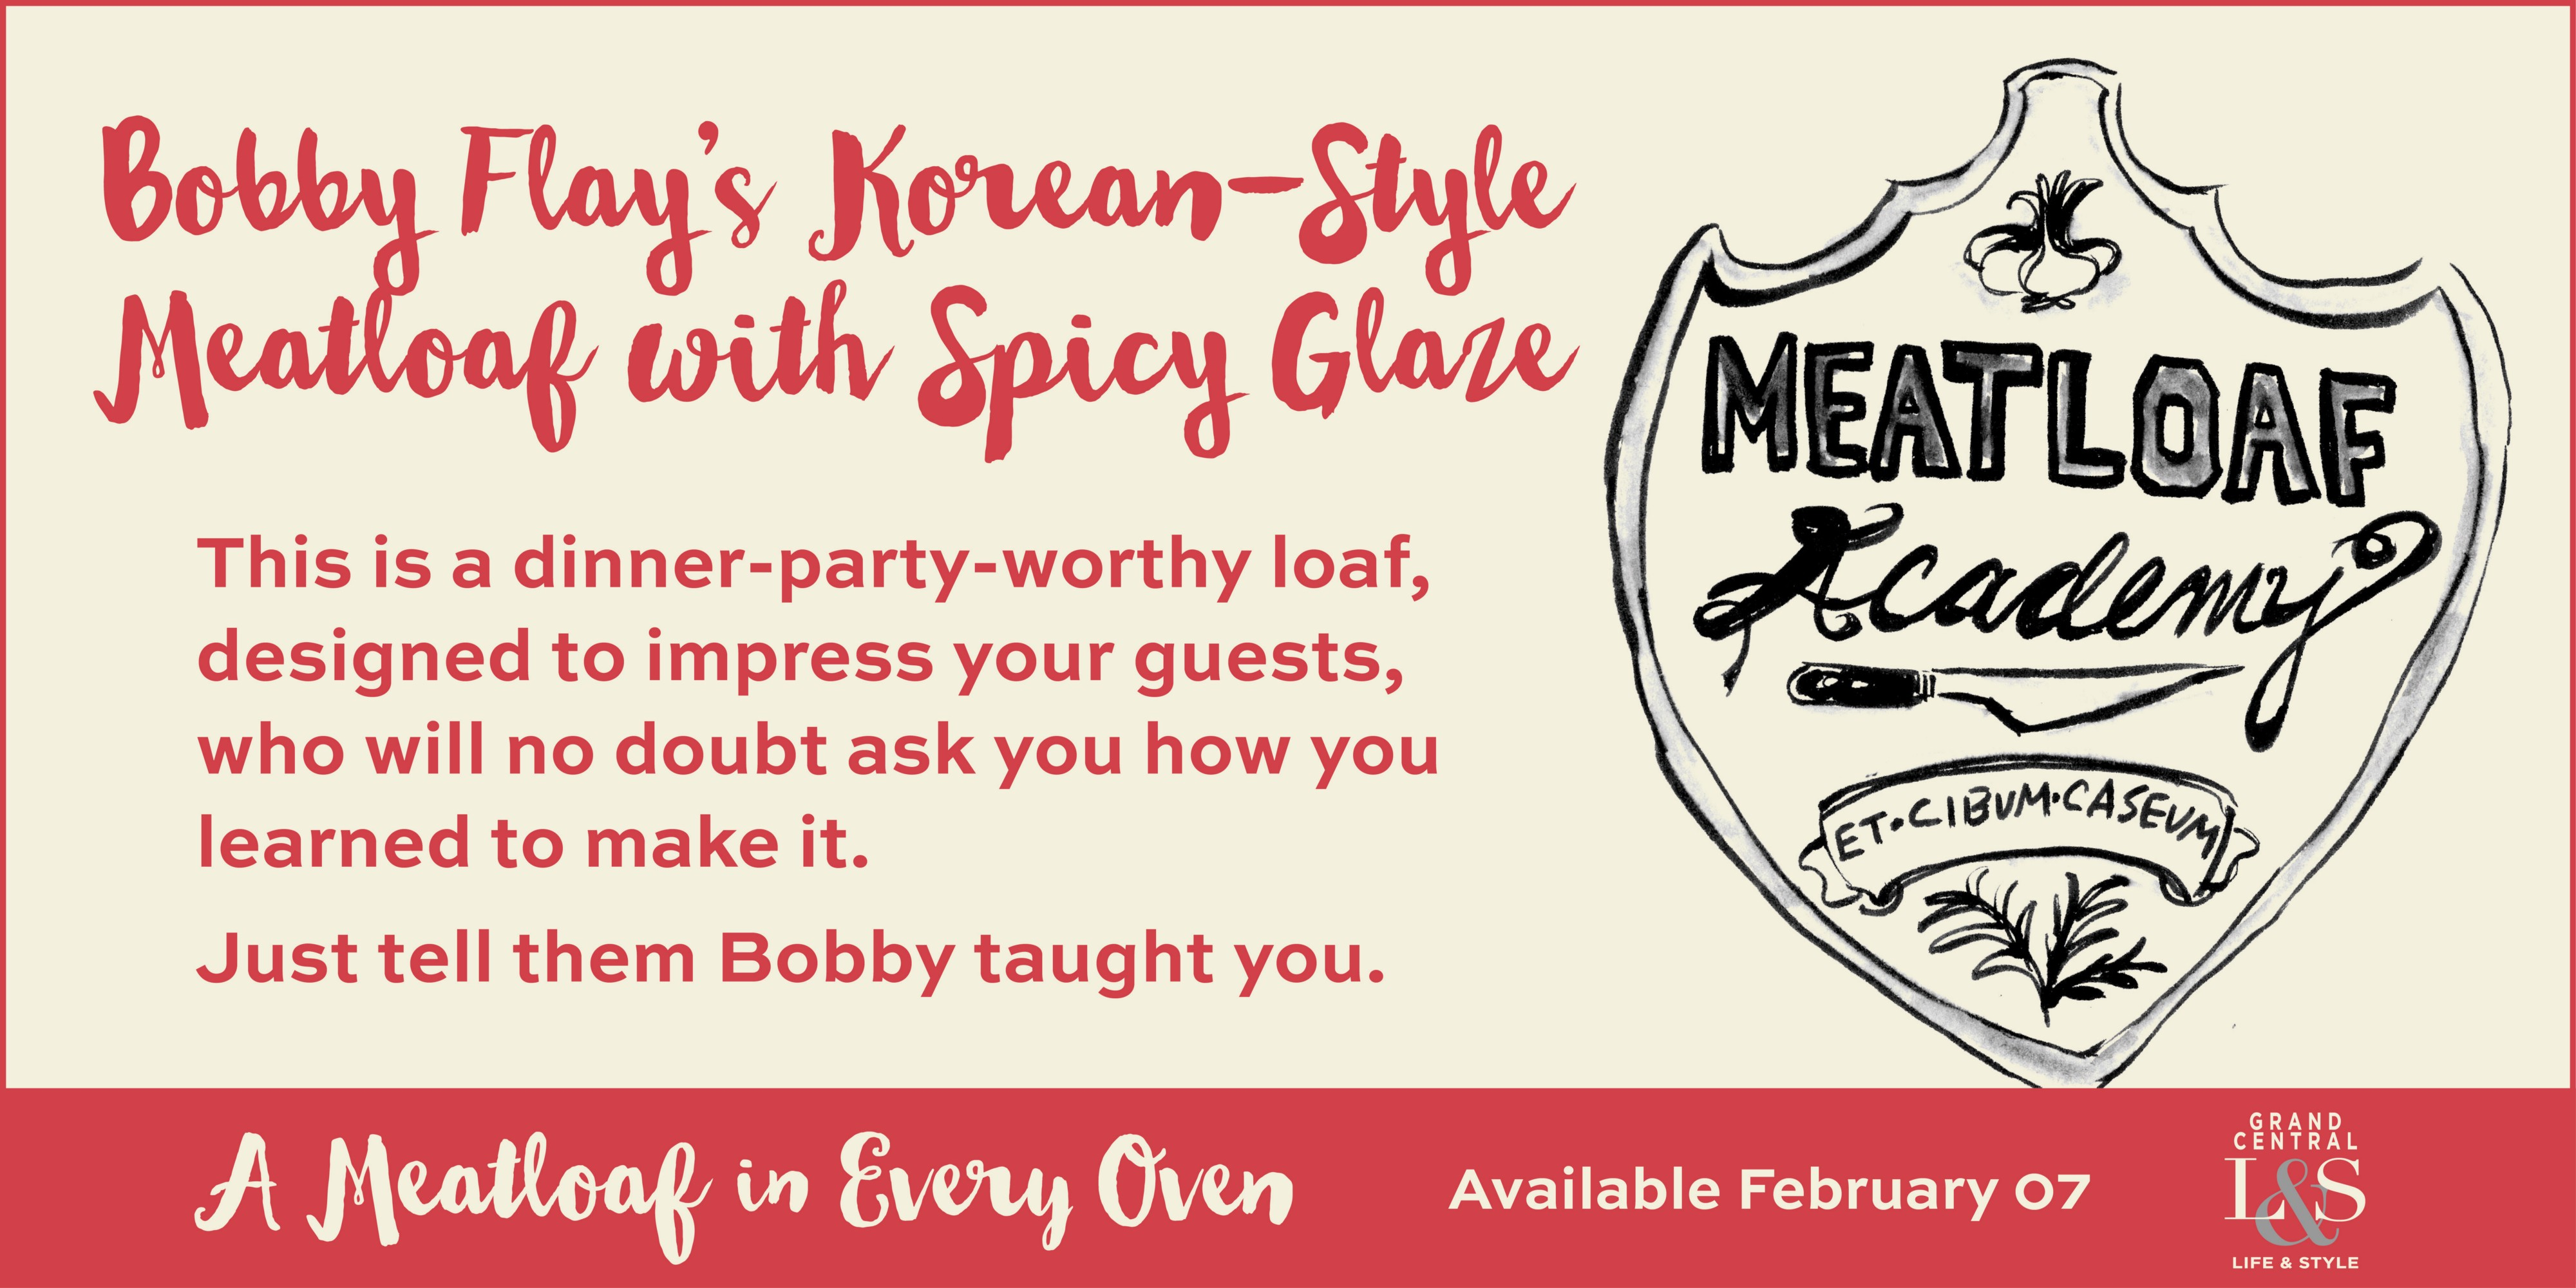 Bobby Flay's Korean-Style Meatloaf with Spicy Glaze (Serves 8)